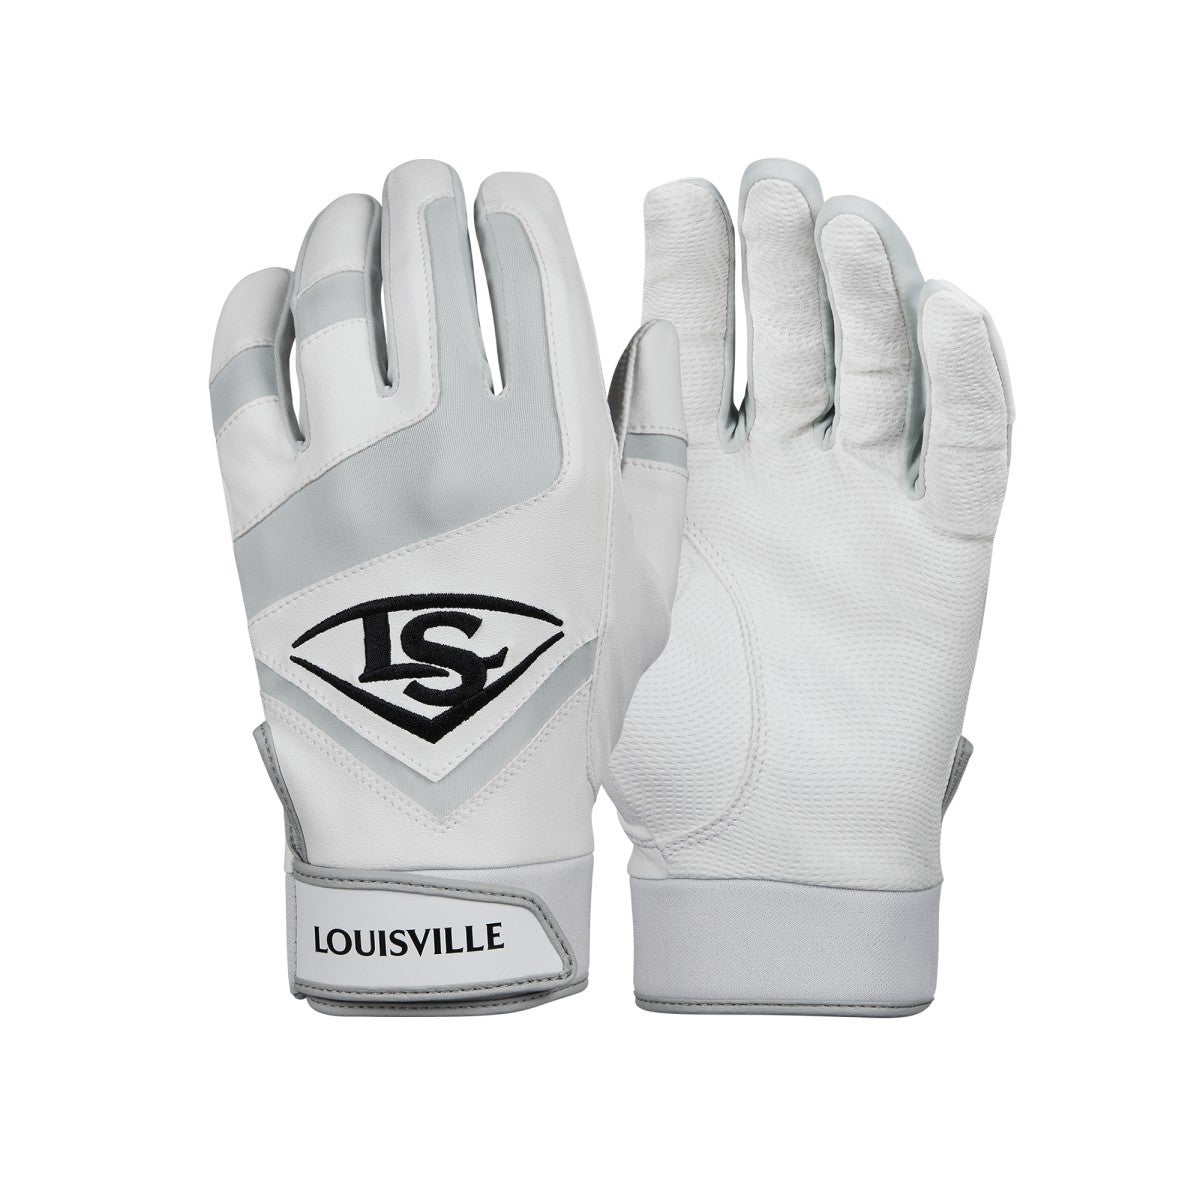 Genuine Youth Batting Glove